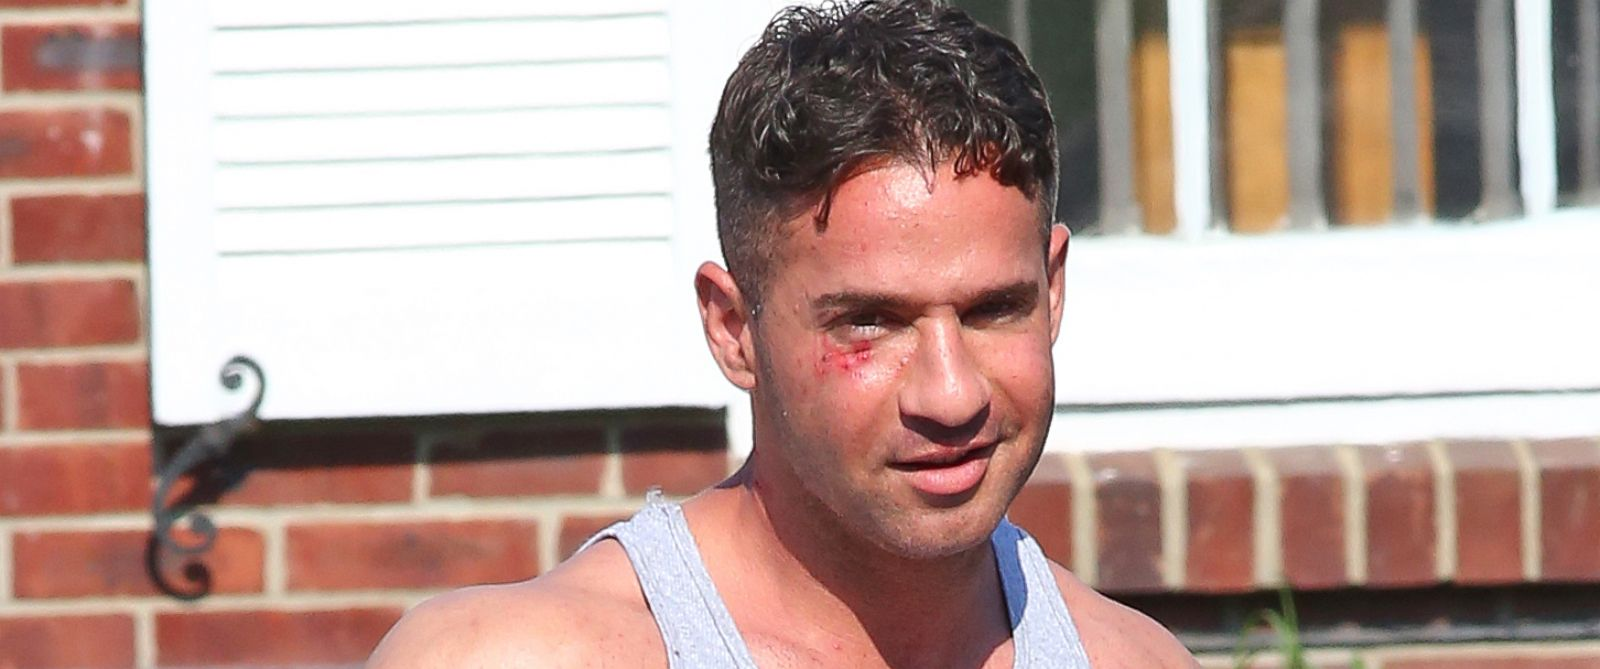 PHOTO: Mike The Situation Sorrentino is seen leaving Middletown township police department after reportedly being arrested following a flight at his tanning salon in New Jersey, June 17, 2014.